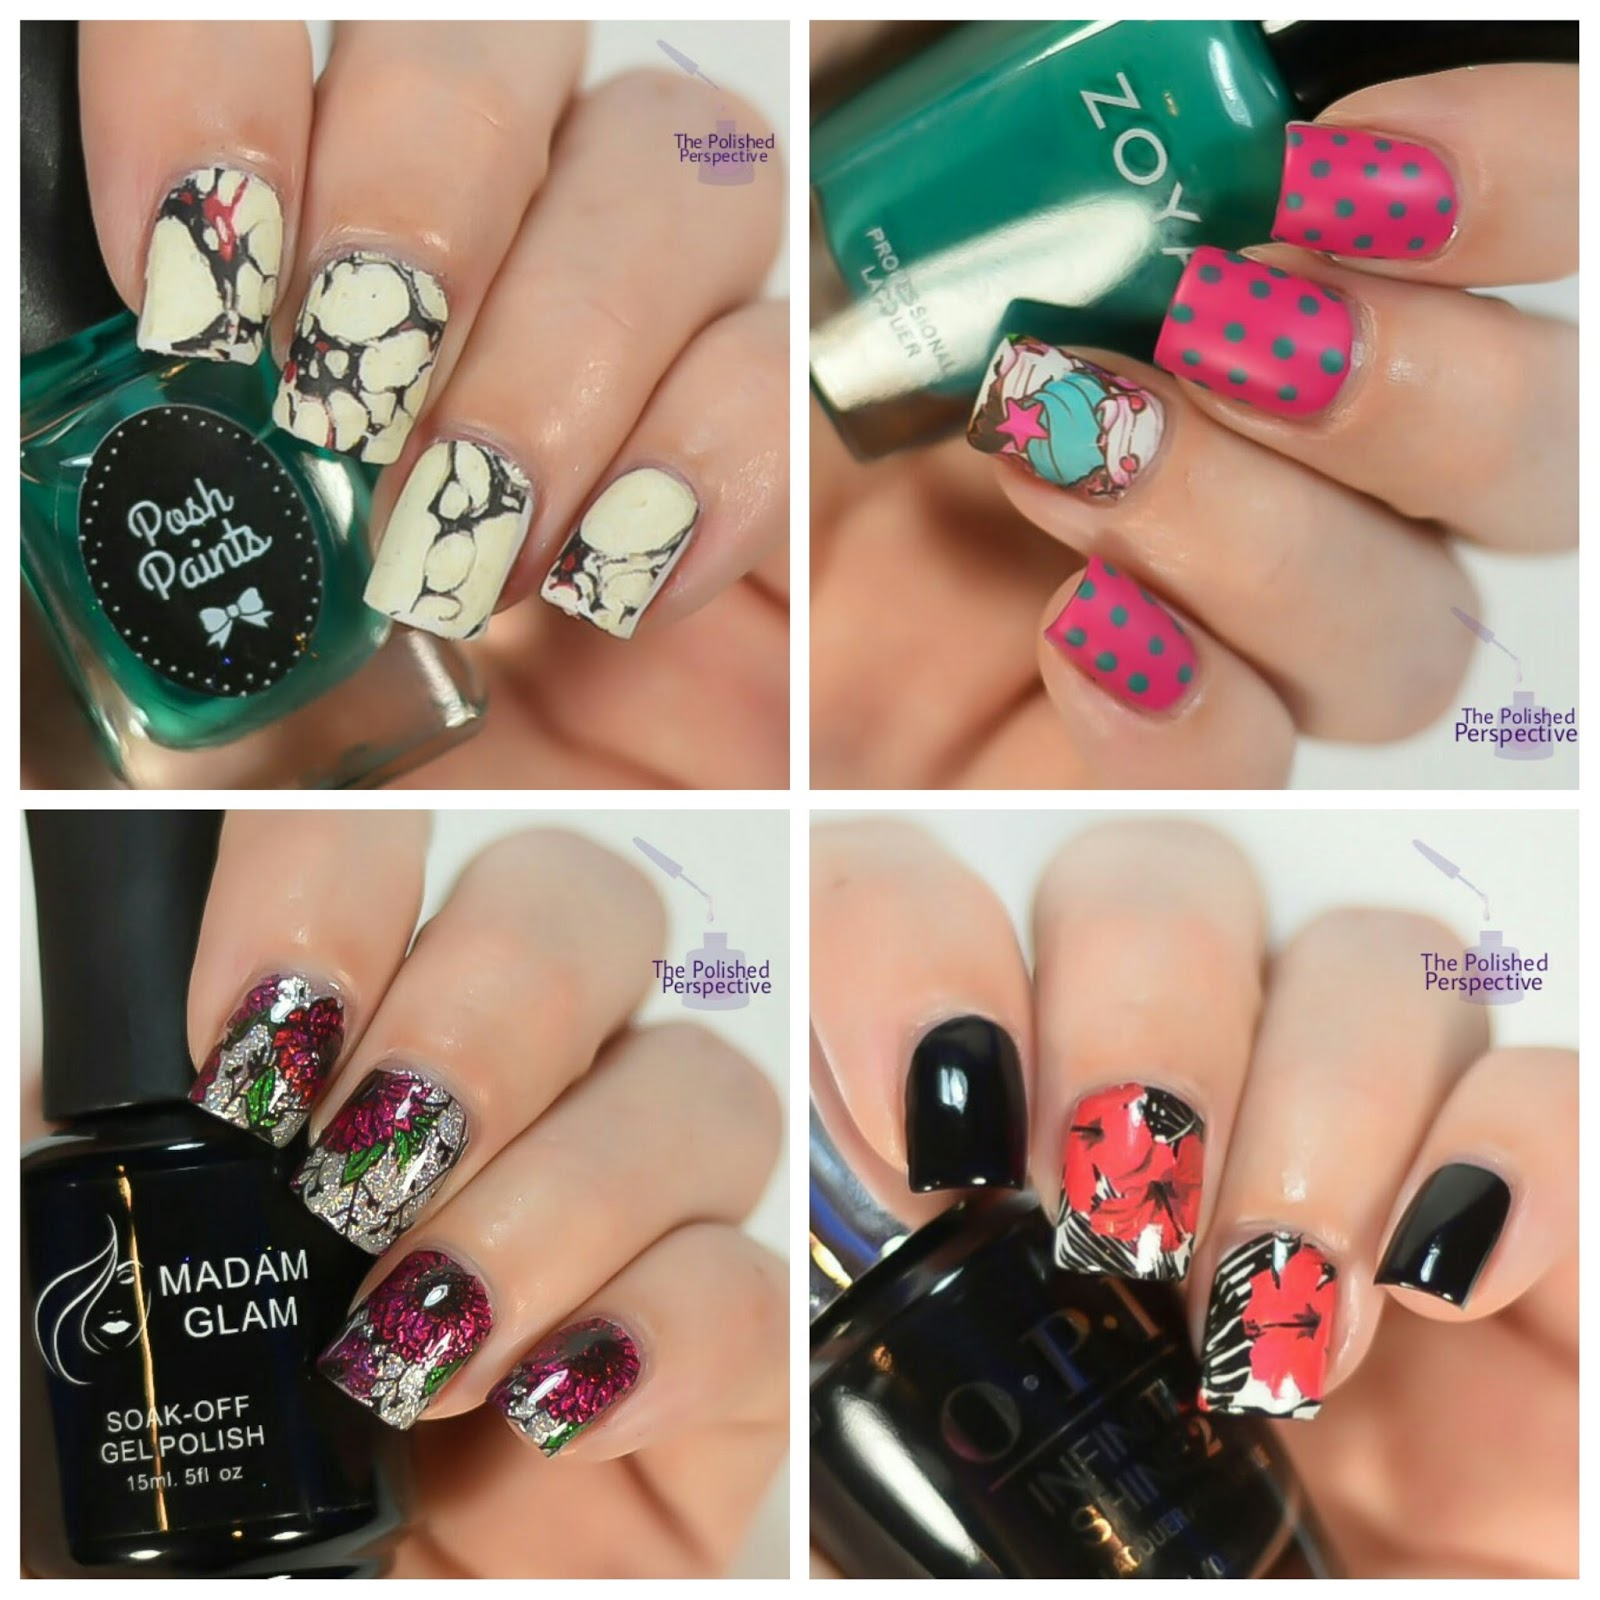 The Polished Perspective: Nail Art Water Decal Review